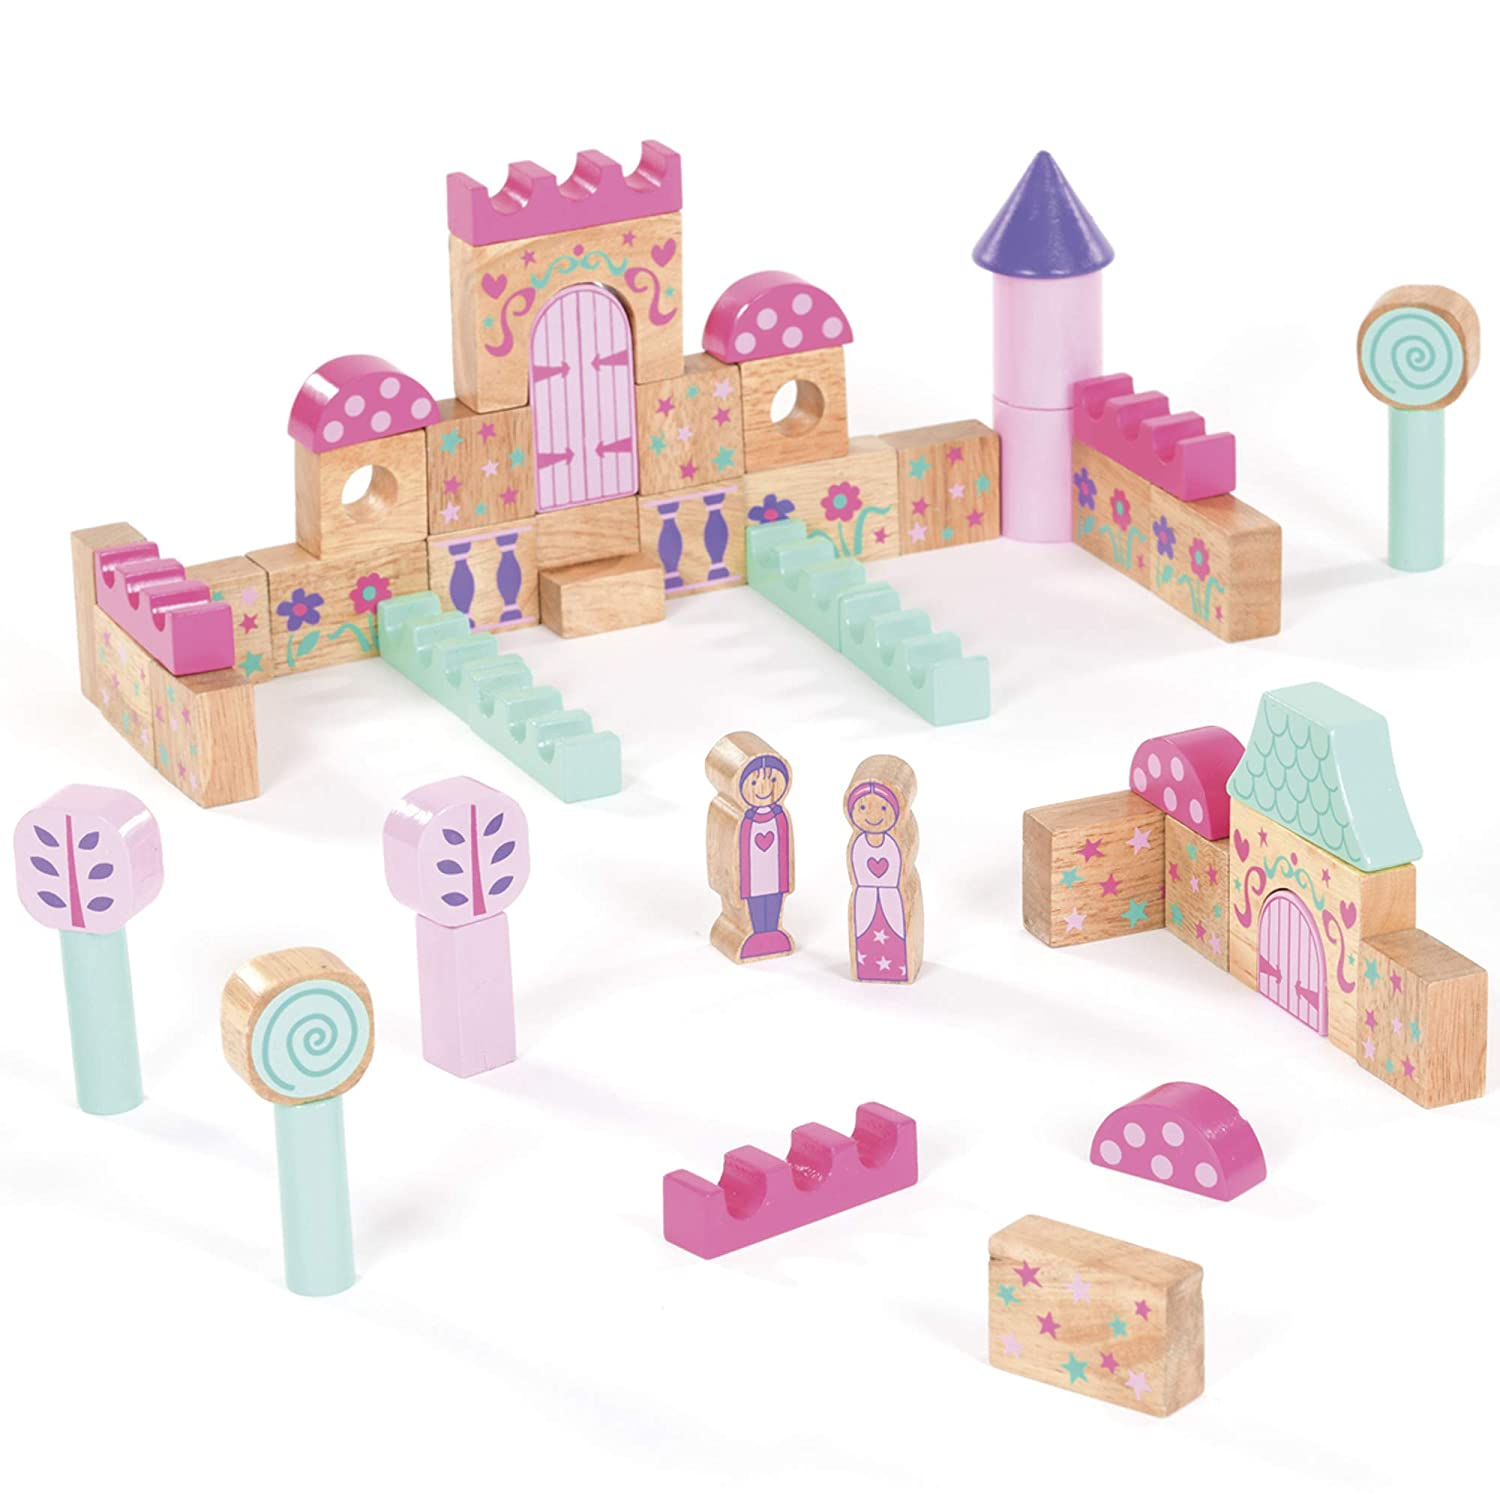 great for young kids Build A Castle model kit from Small World Creative